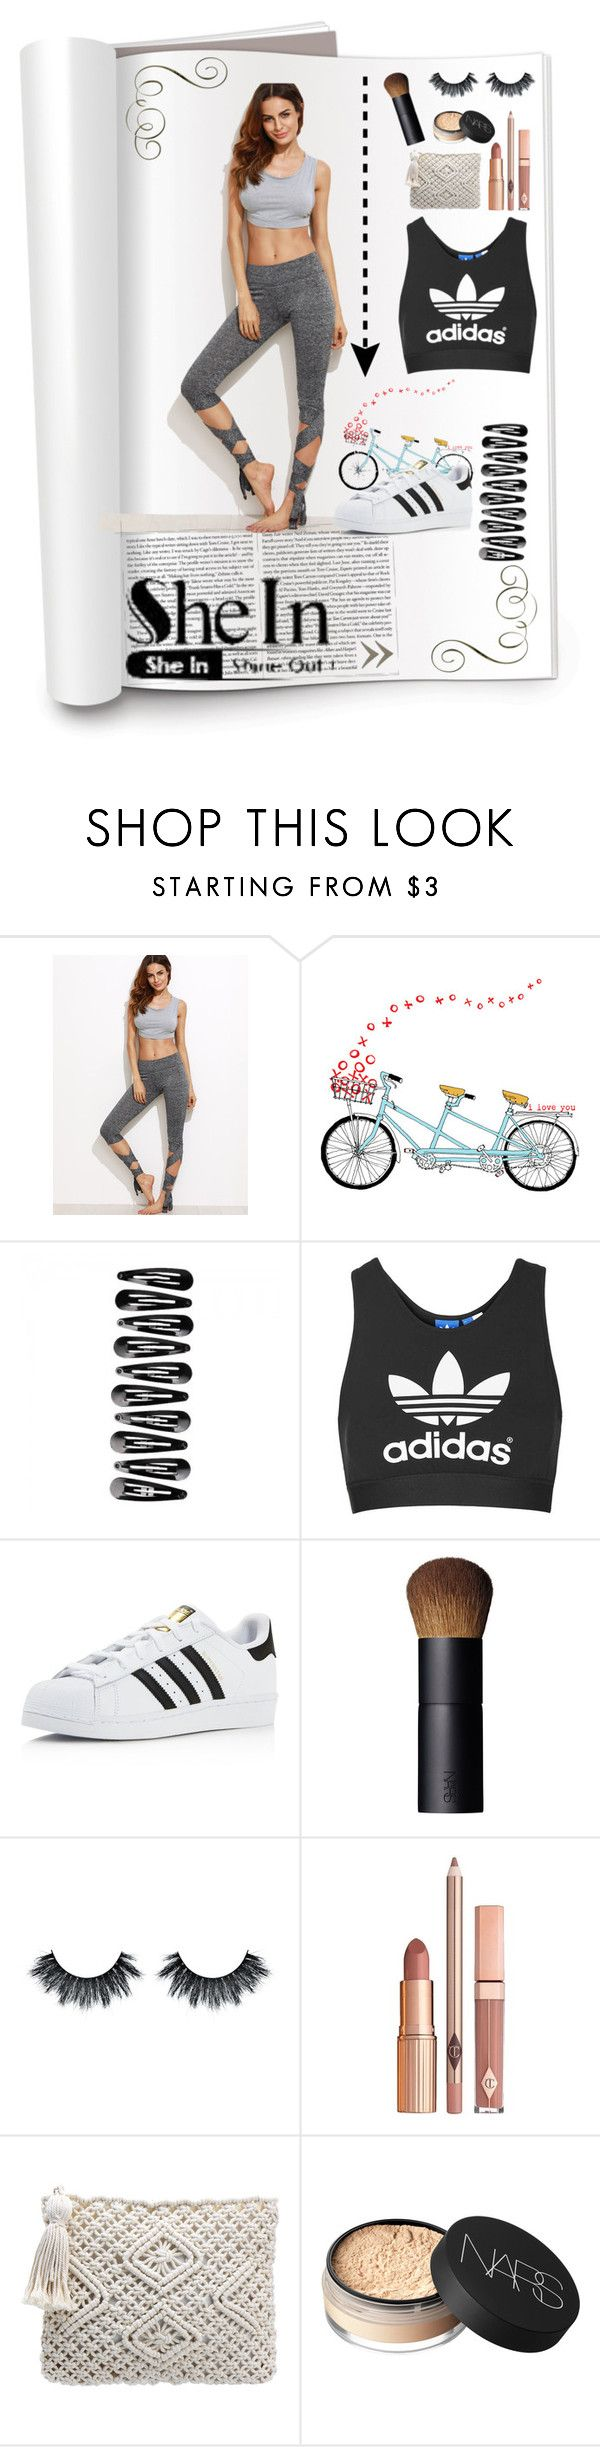 """xx"" by rhiannonpsayer on Polyvore featuring xO Design, Topshop, adidas, NARS Cosmetics, Dolce Vita, Beauty, women, fashionset and 2016"